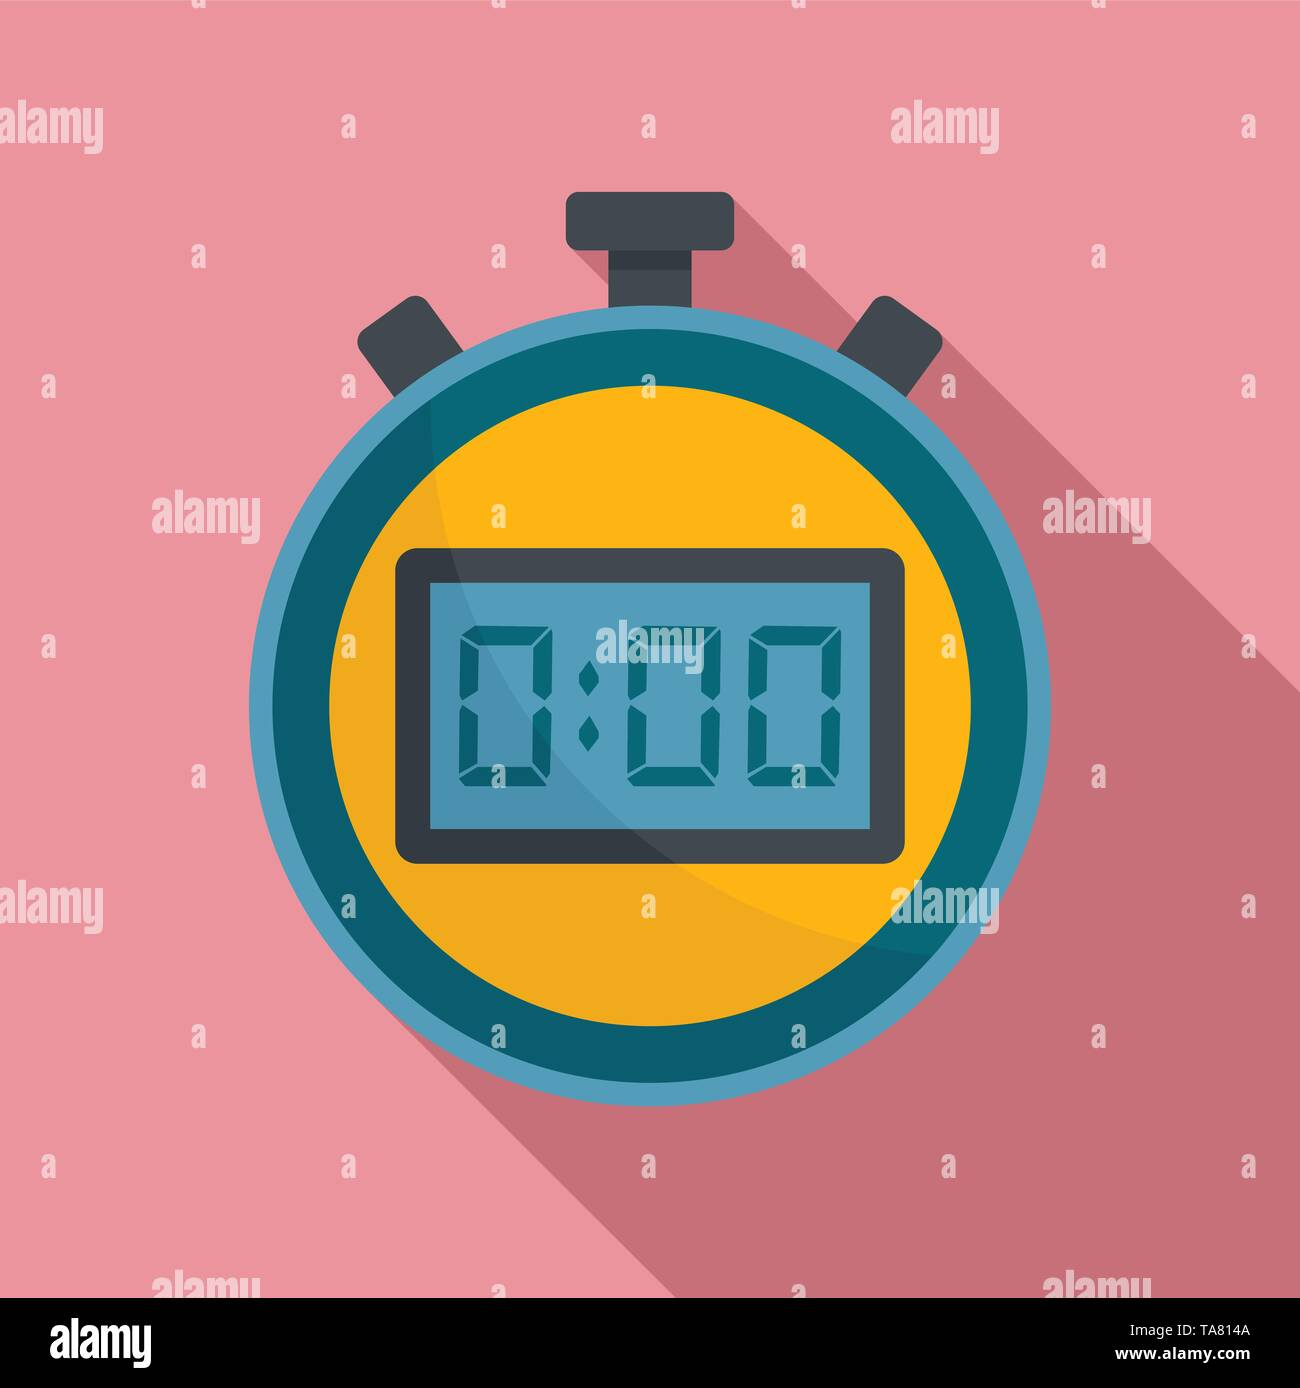 Sport stopwatch icon. Flat illustration of sport stopwatch vector icon for web design - Stock Image